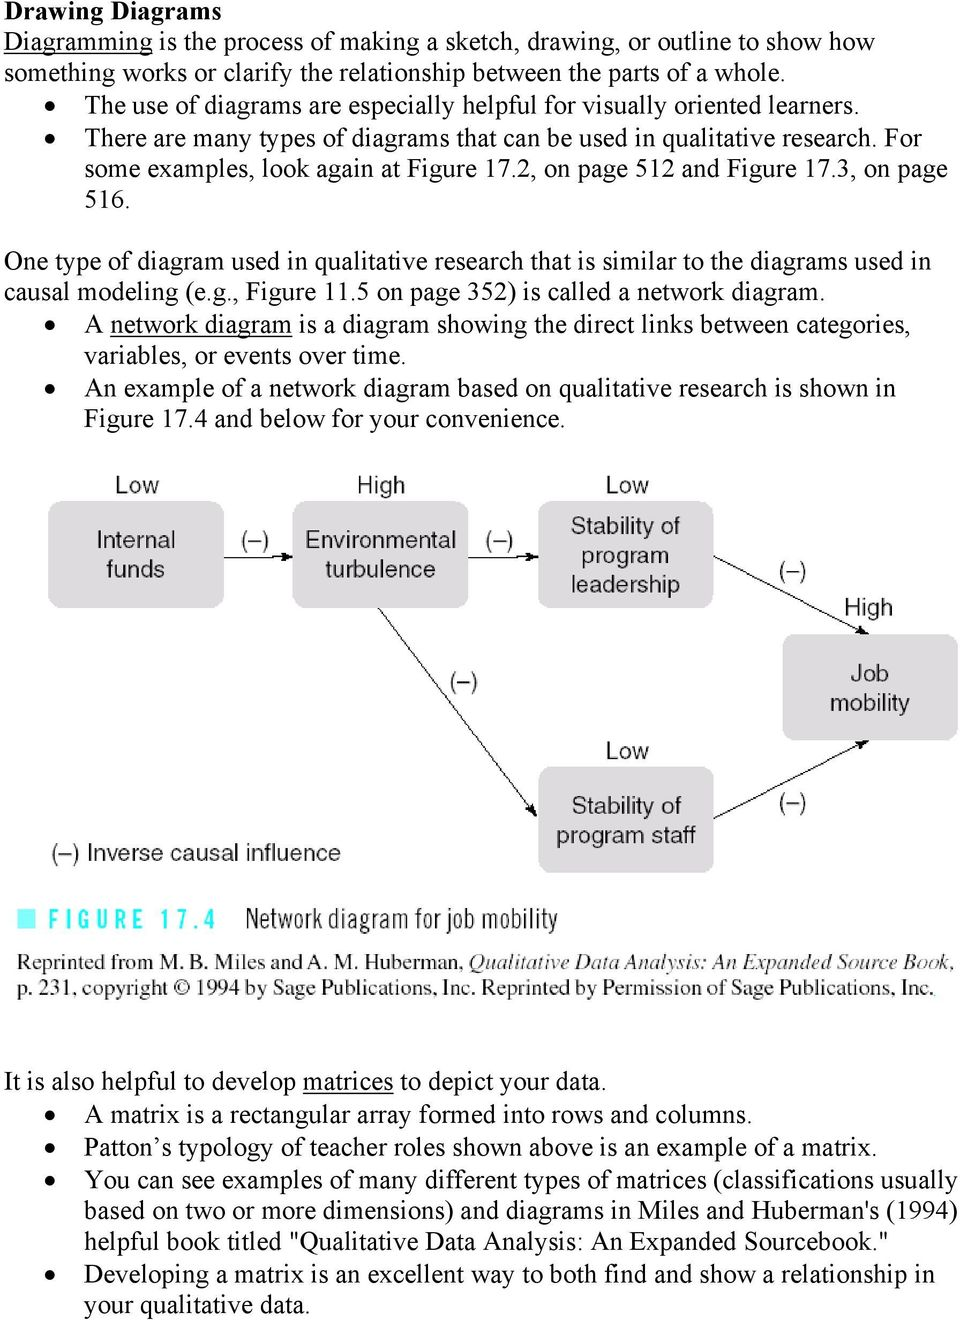 2, on page 512 and Figure 17.3, on page 516. One type of diagram used in qualitative research that is similar to the diagrams used in causal modeling (e.g., Figure 11.